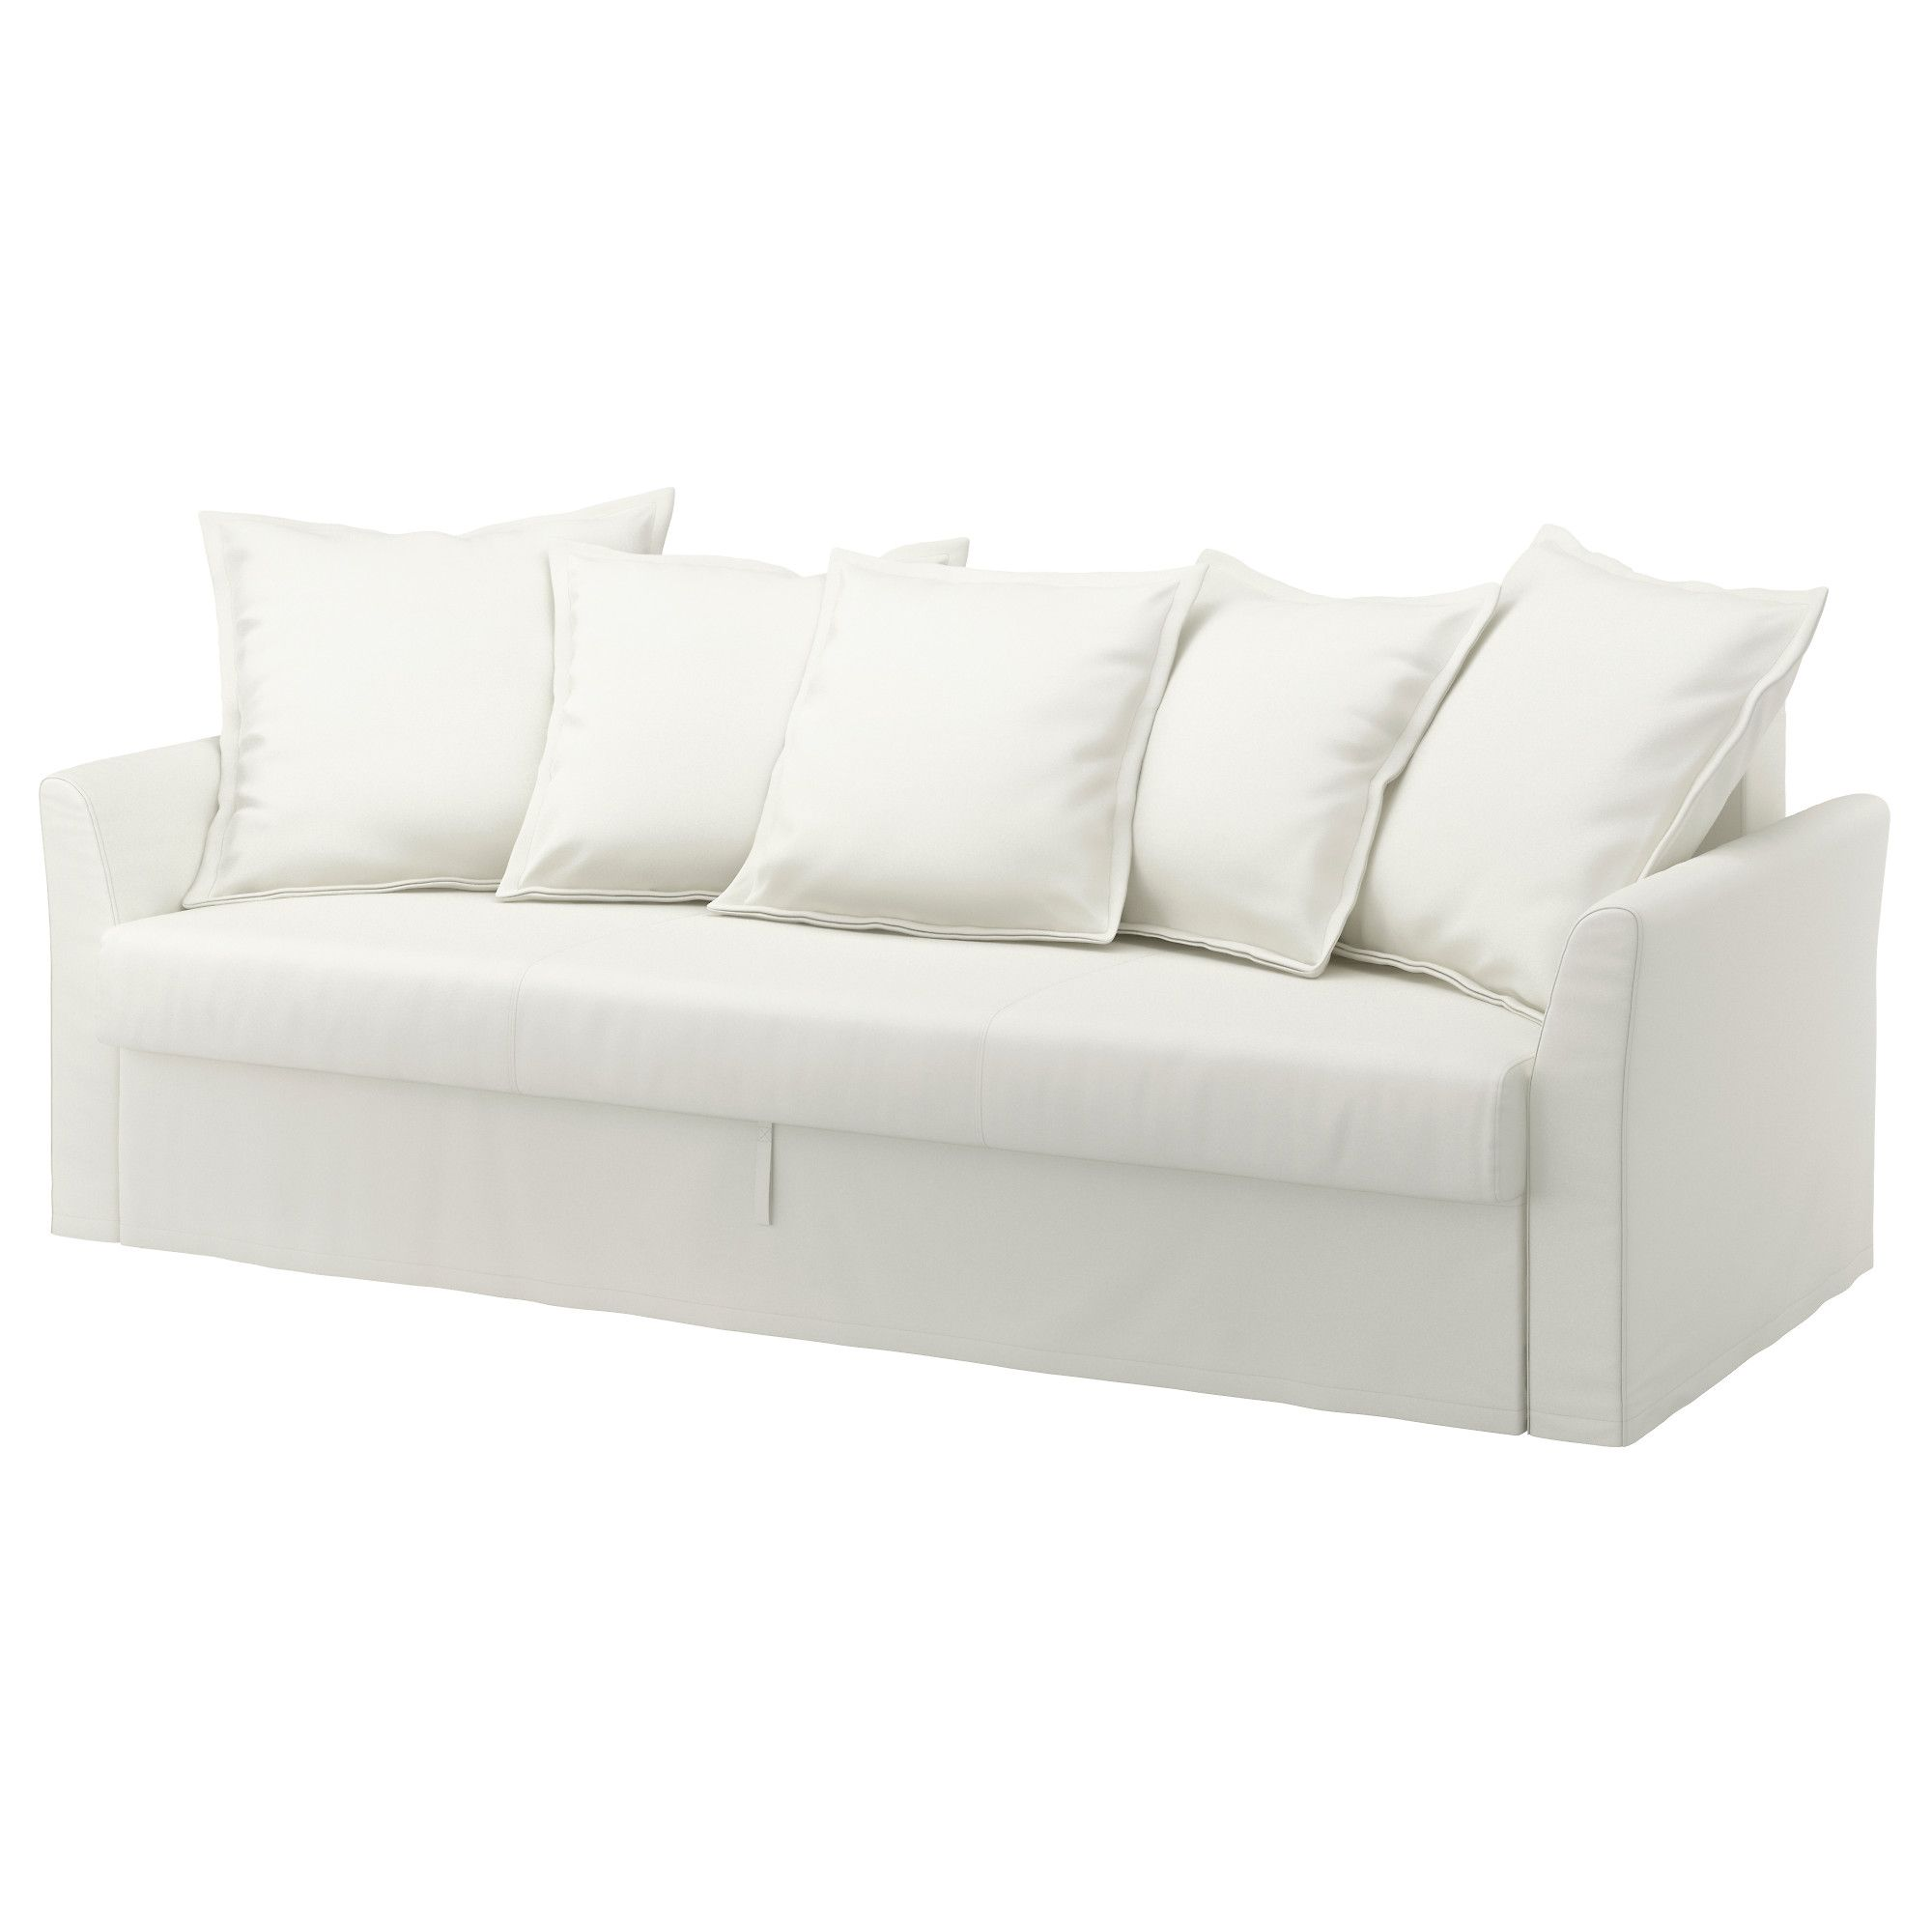 KNOPPARP Two seat sofa IKEA KNOPPARP sofa is very durable thanks